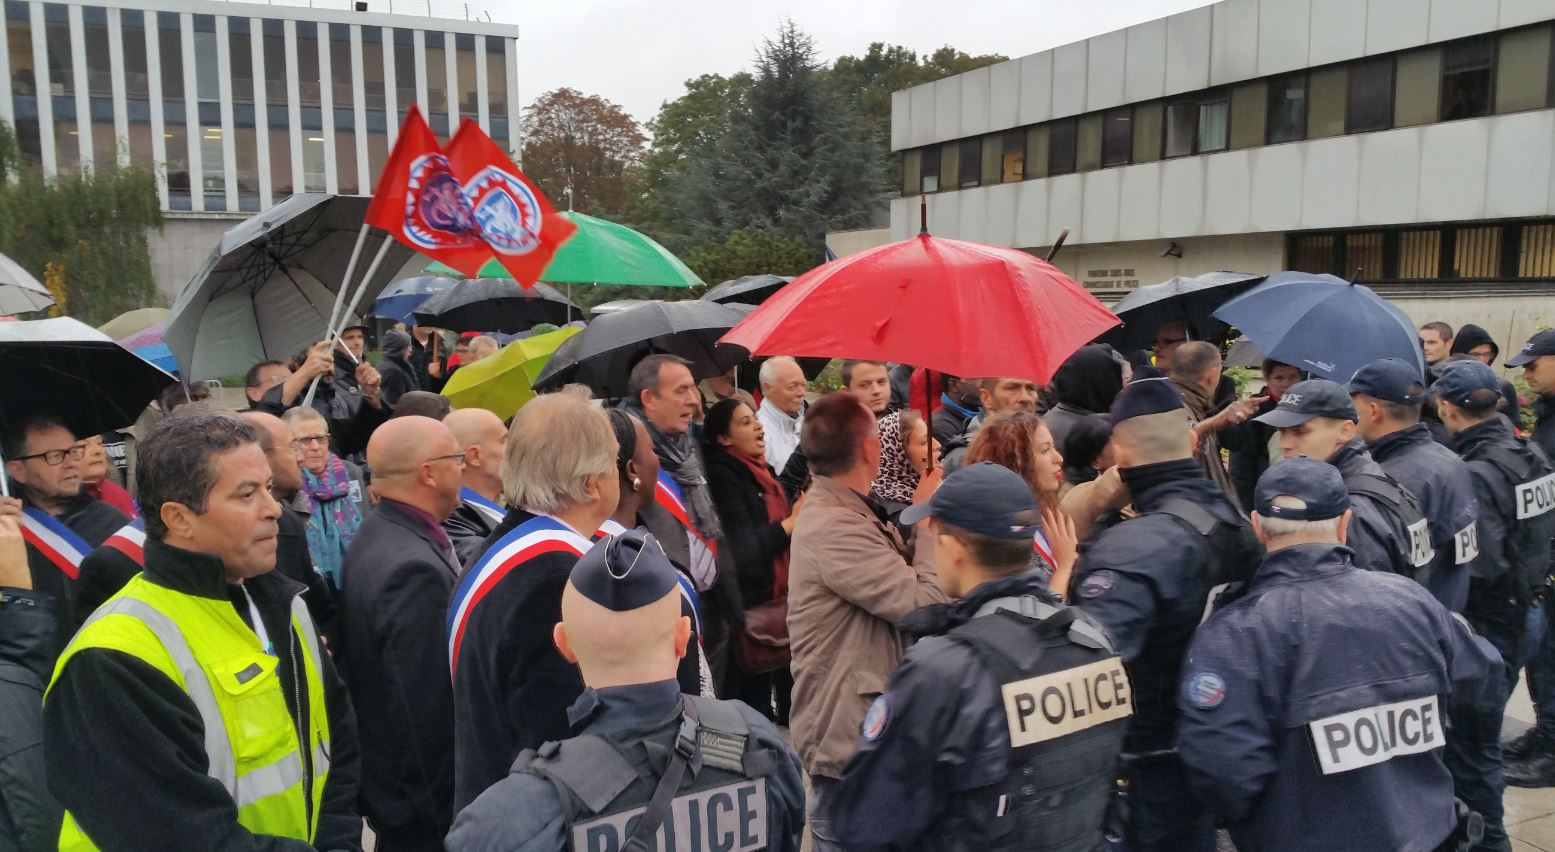 Manif et contre manif FN Marianne Fontenay 9